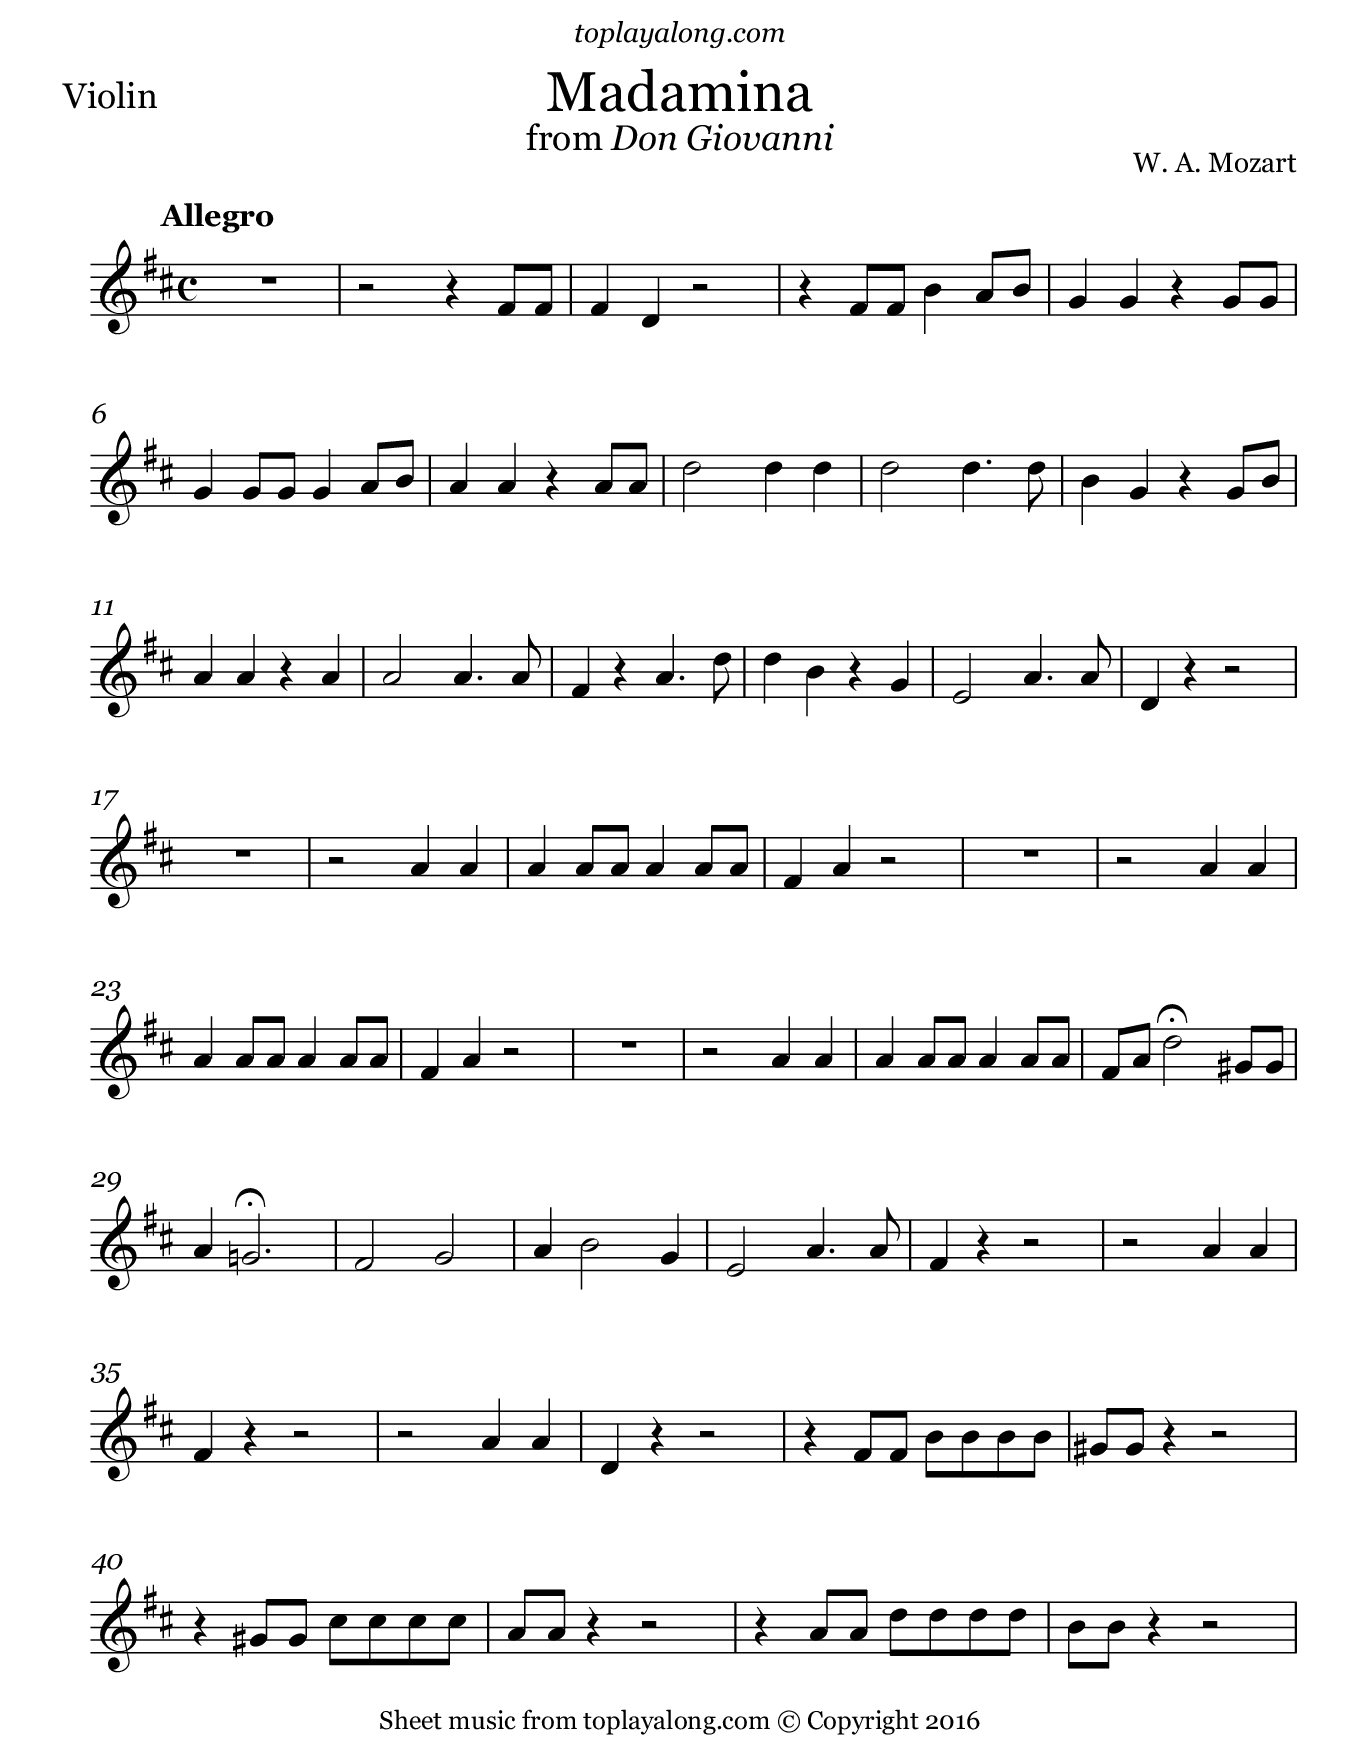 Madamina from Don Giovanni by Mozart. Sheet music for Violin, page 1.